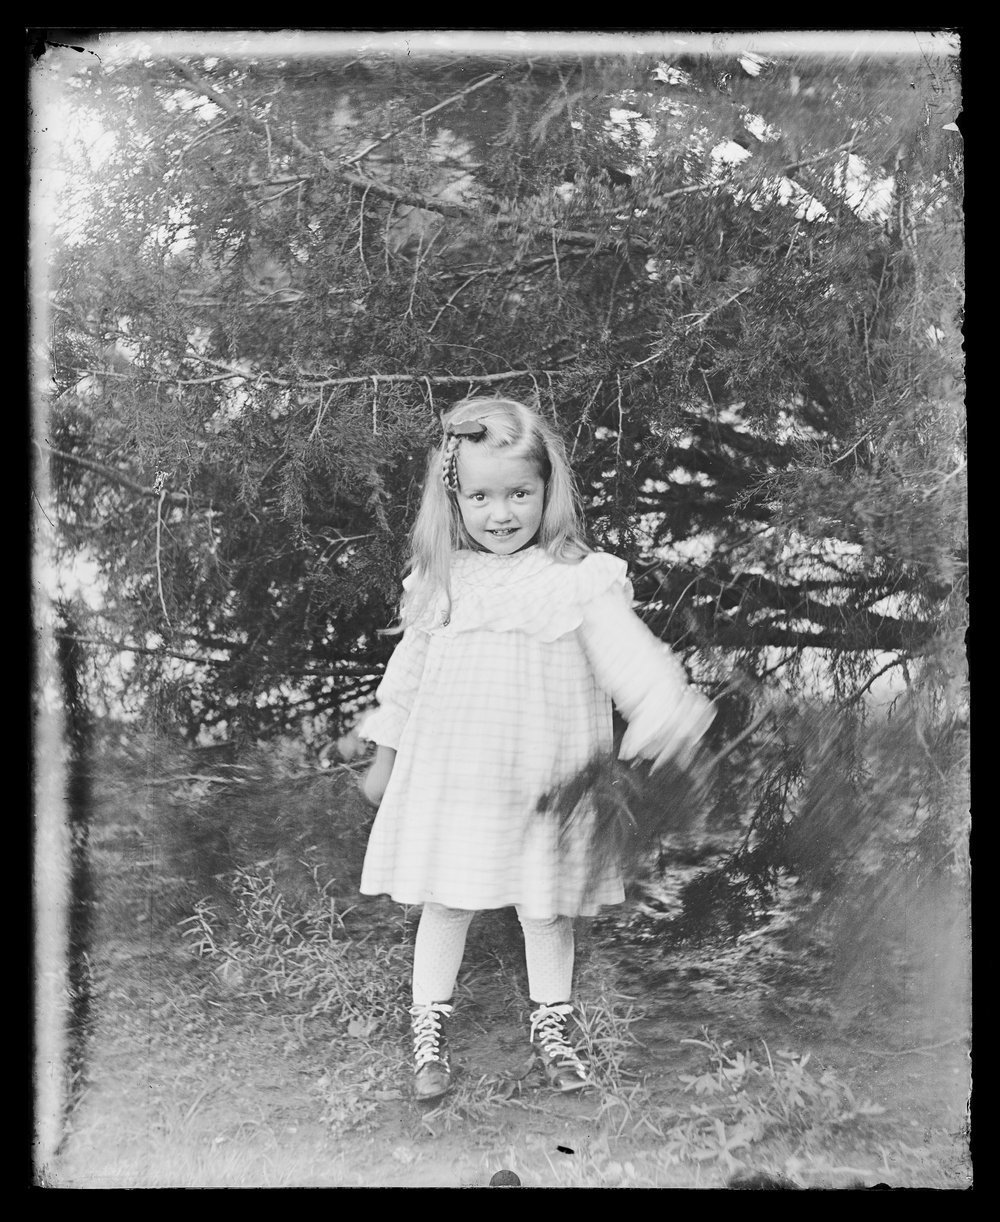 Golden Charles Dresher photograph collection - A little girl, Margaret Dresher, standing by a cedar tree on the J.N. Dresher farm, in Rice County Kansas in 1909. (Neg. 11)